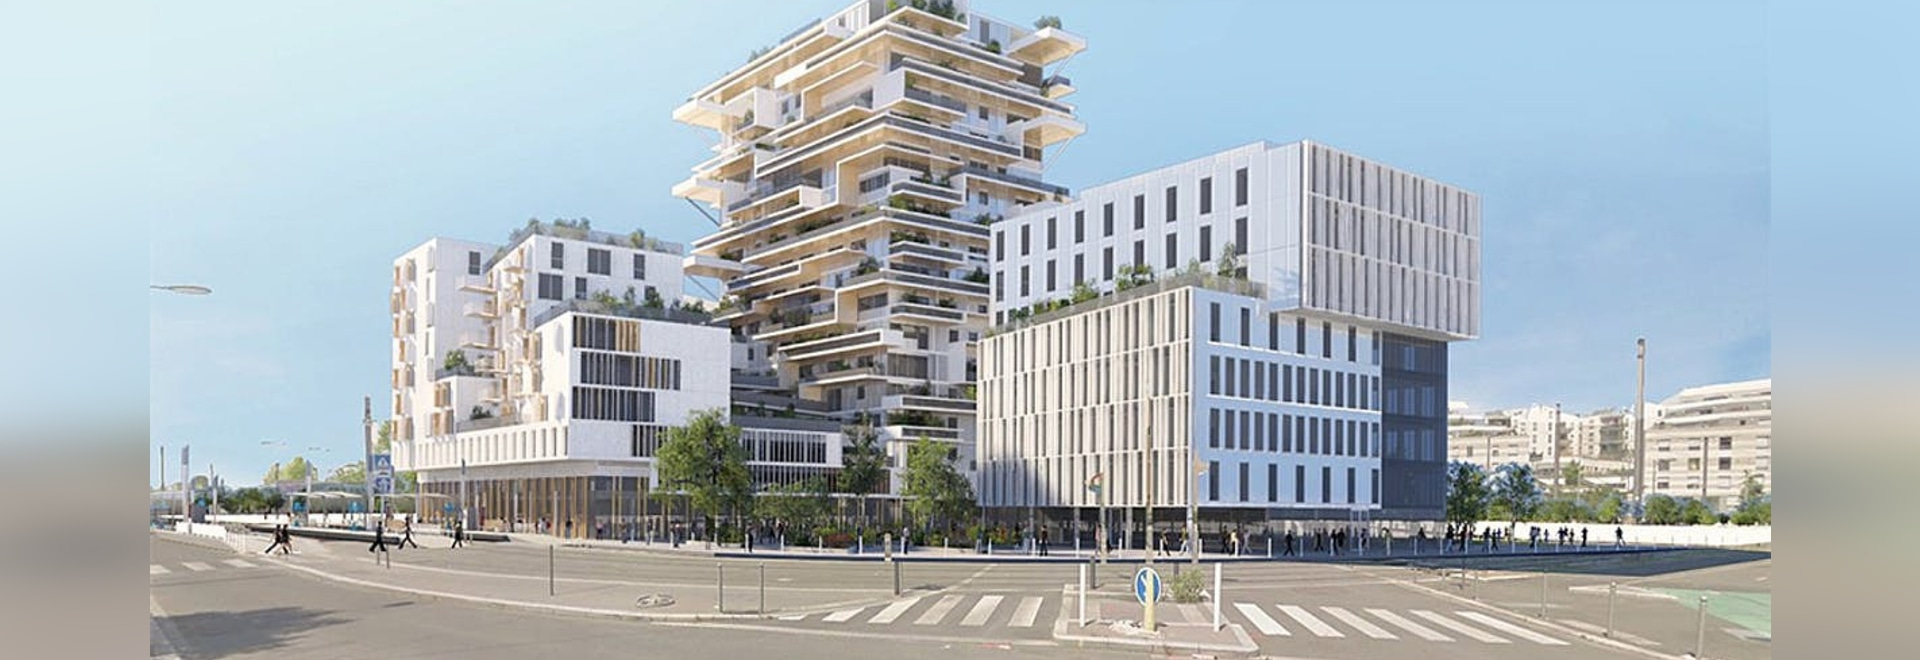 The 18-story wooden residential high-rise Tour Hypérion designed by Jean-Paul Viguier & Associés was announced for the city of Bordeaux in 2016 as France's first timber tower. The model project is ...